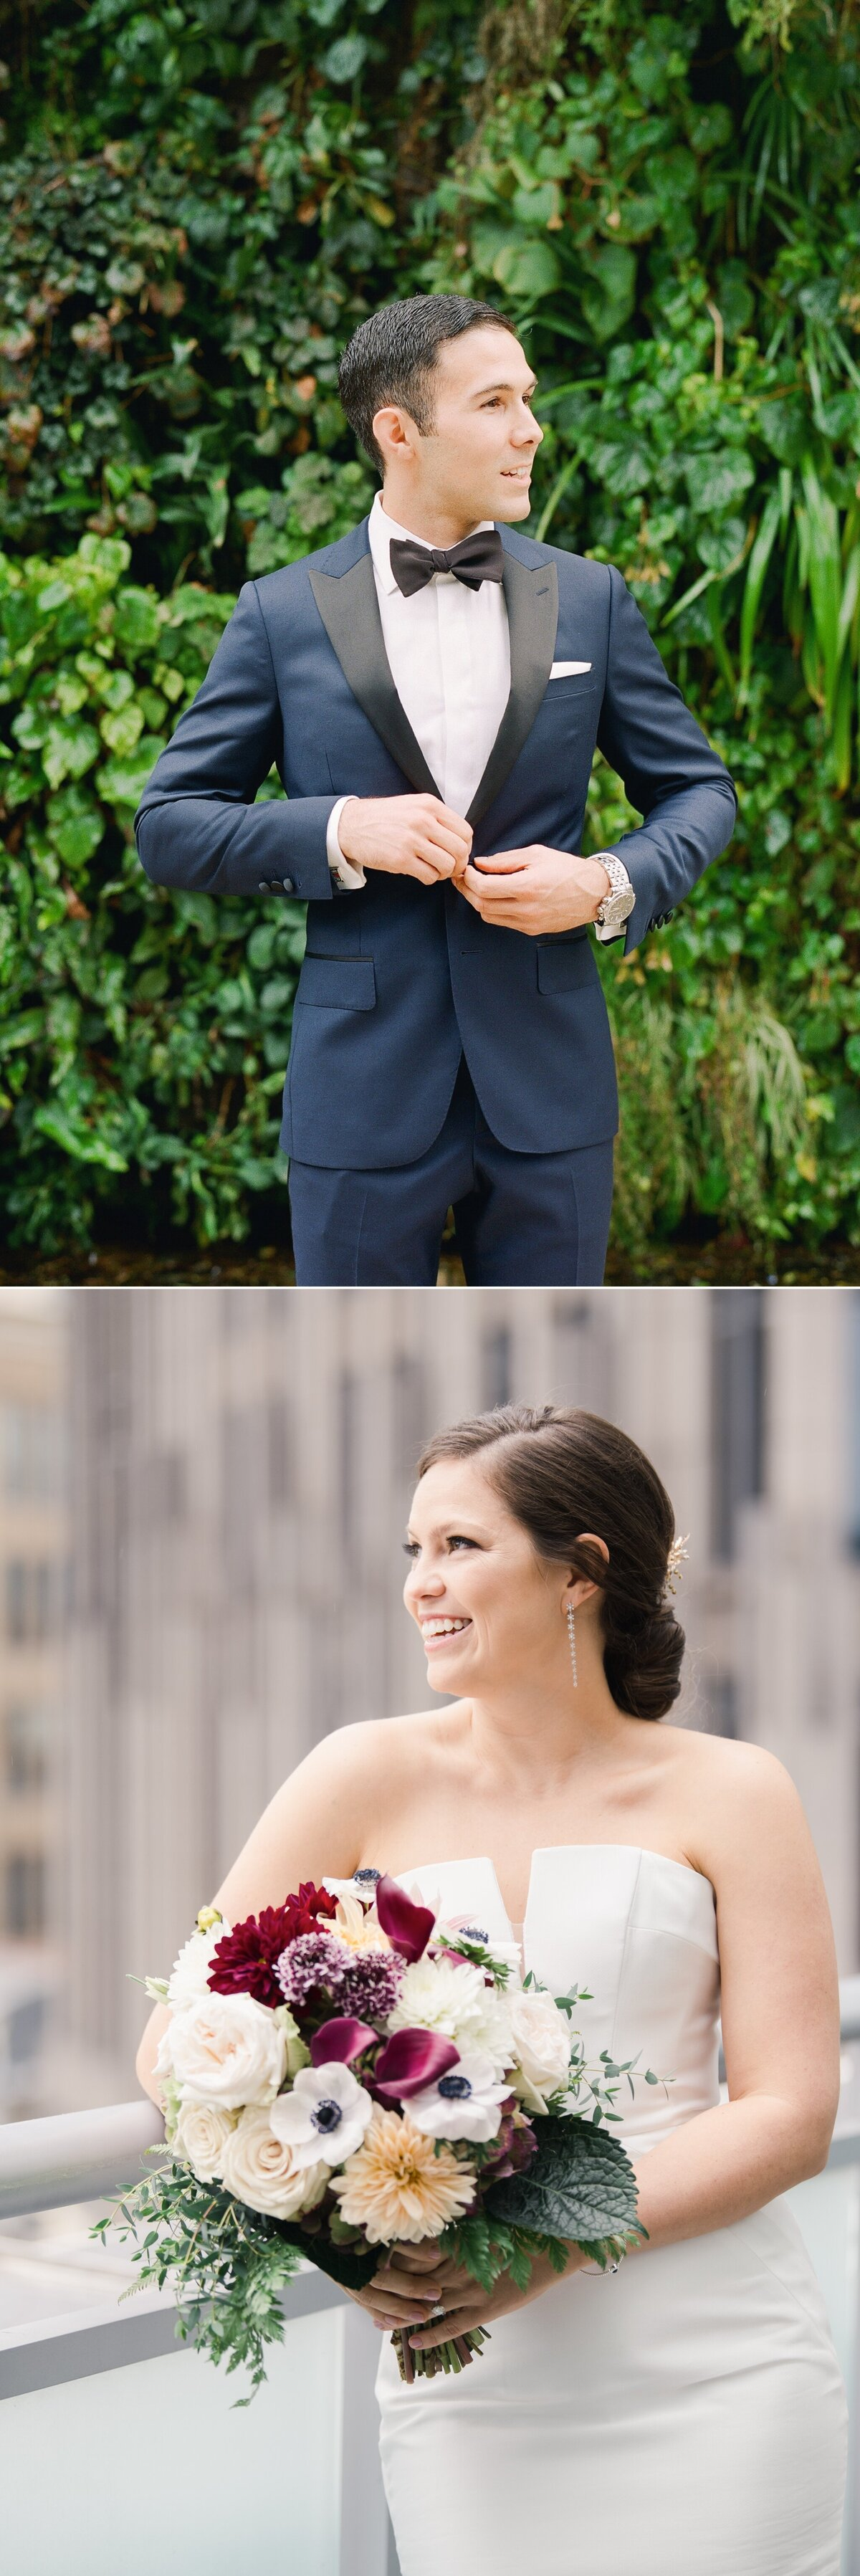 foundation-for-the-carolinas-wedding-photos-amy-kolo 14